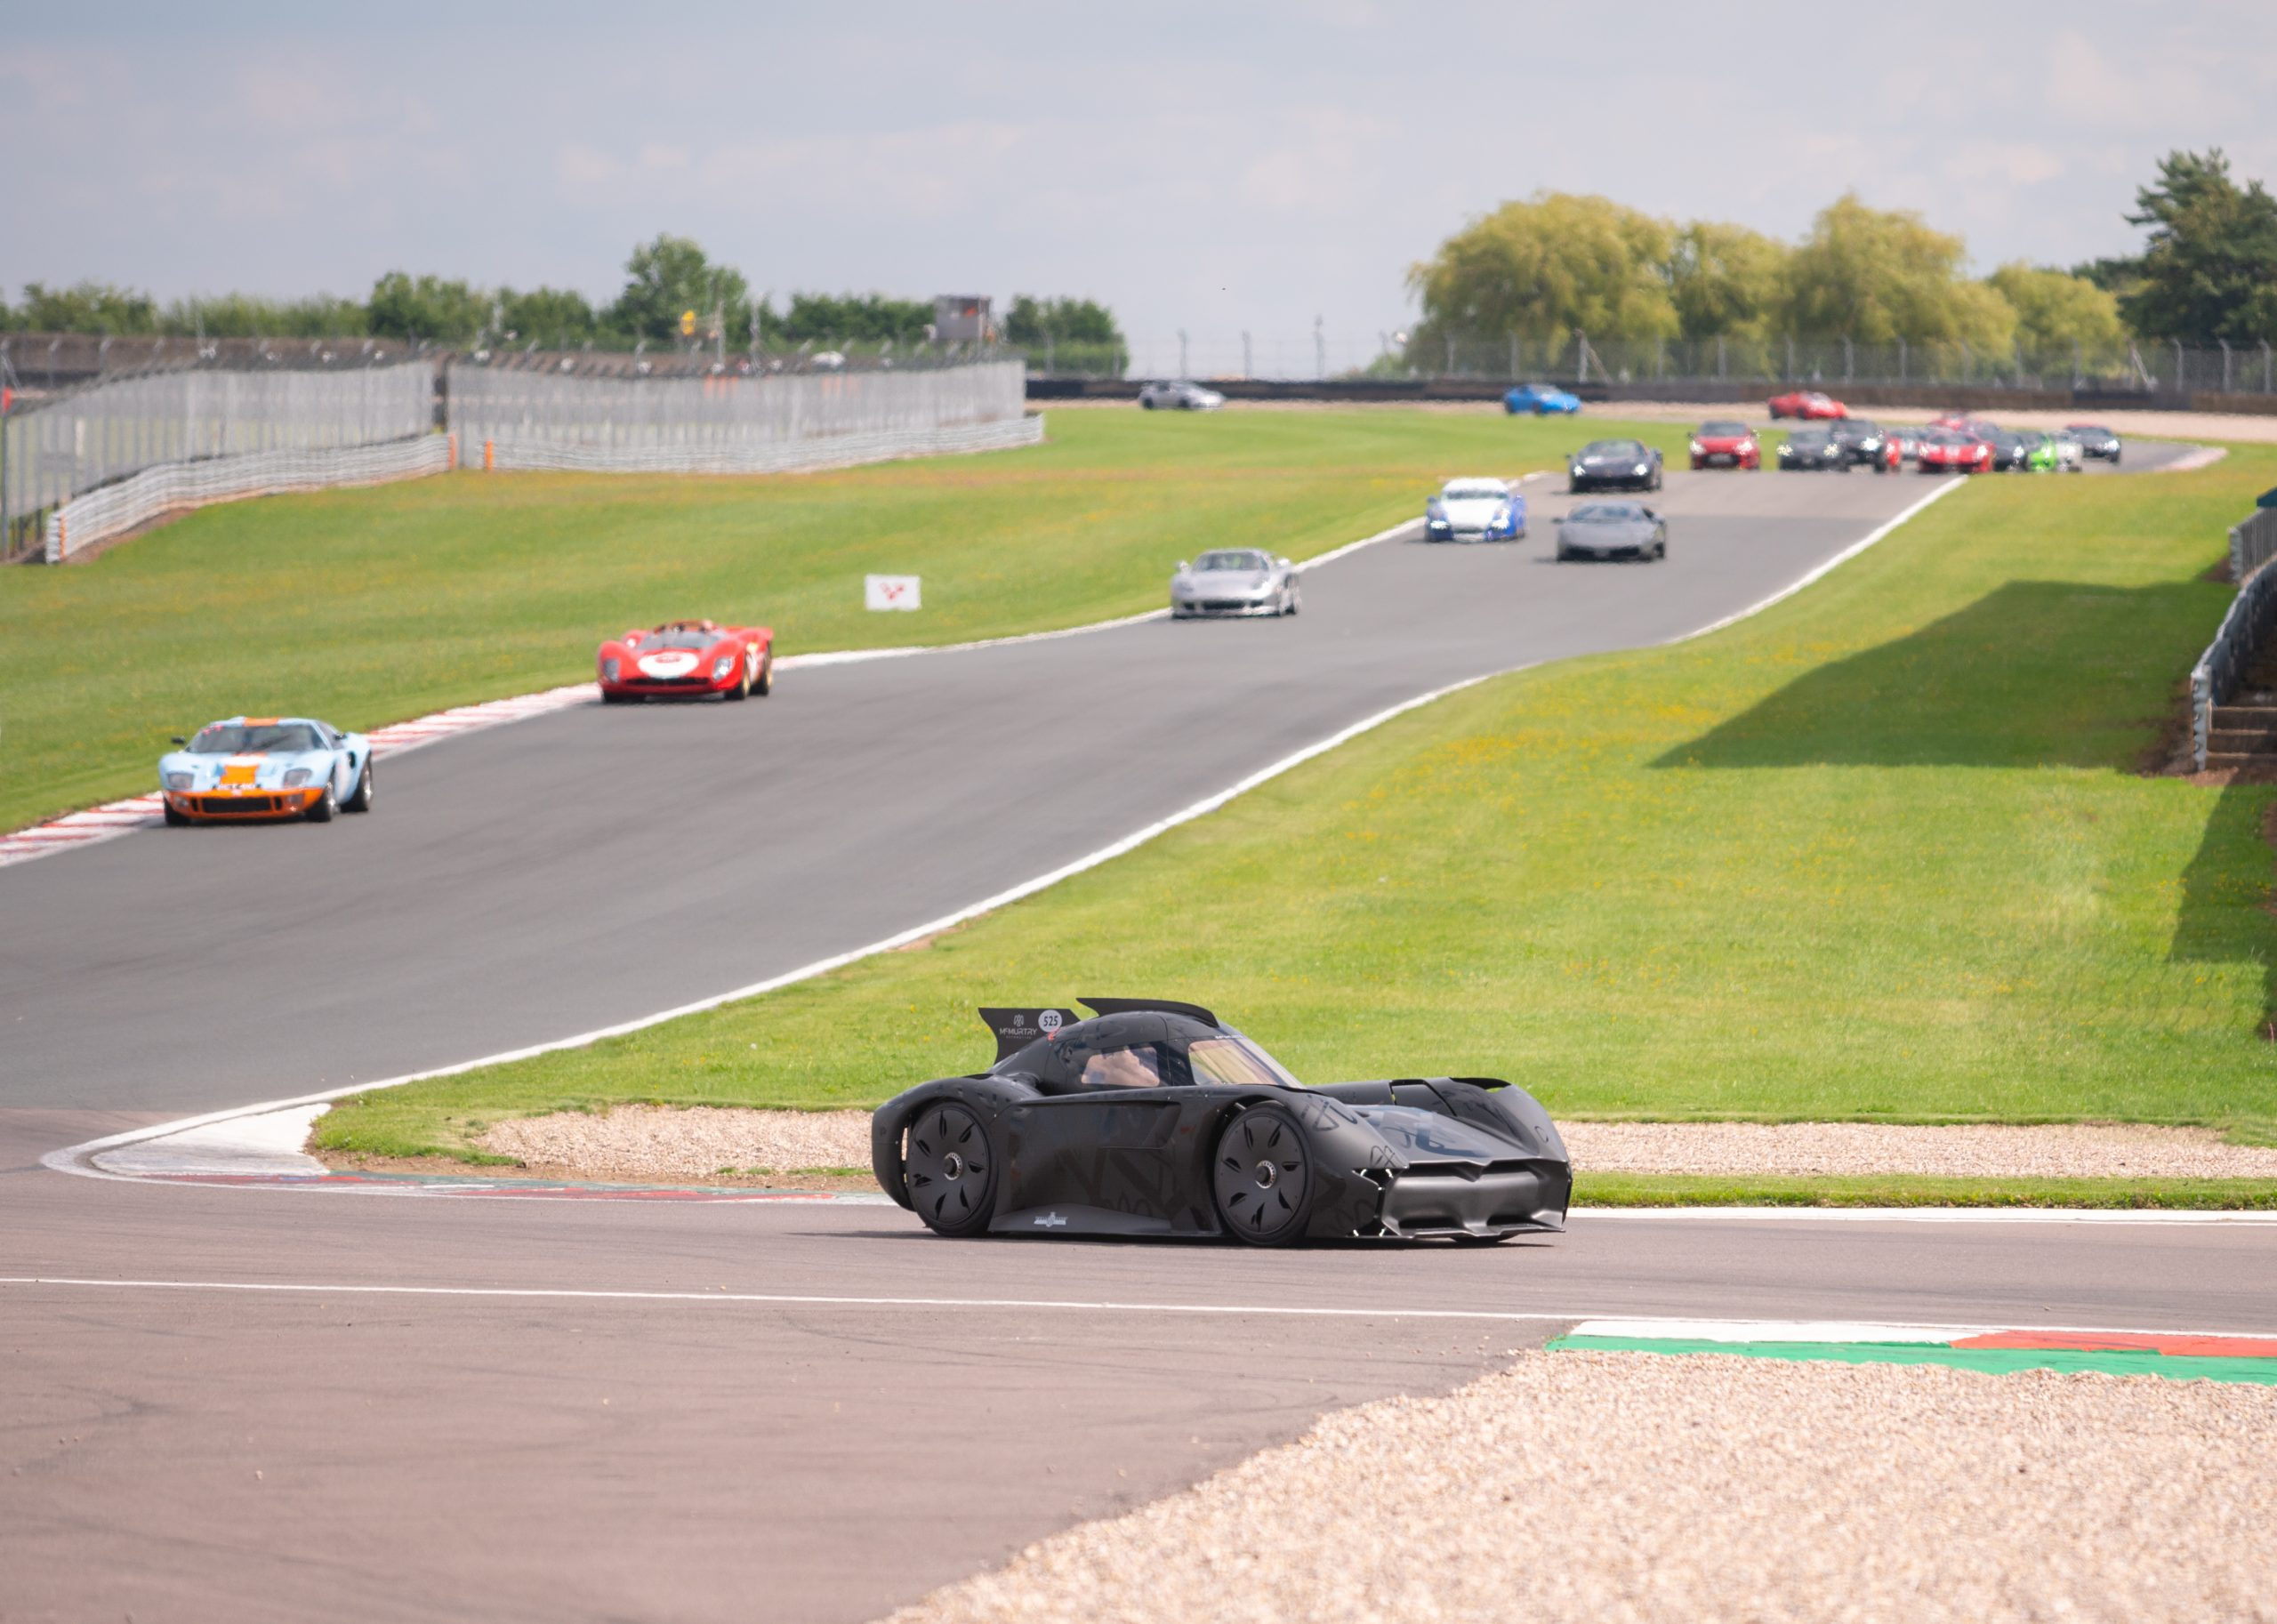 The McMurtry Spéirling taking part in the supercar parade at Donington Park